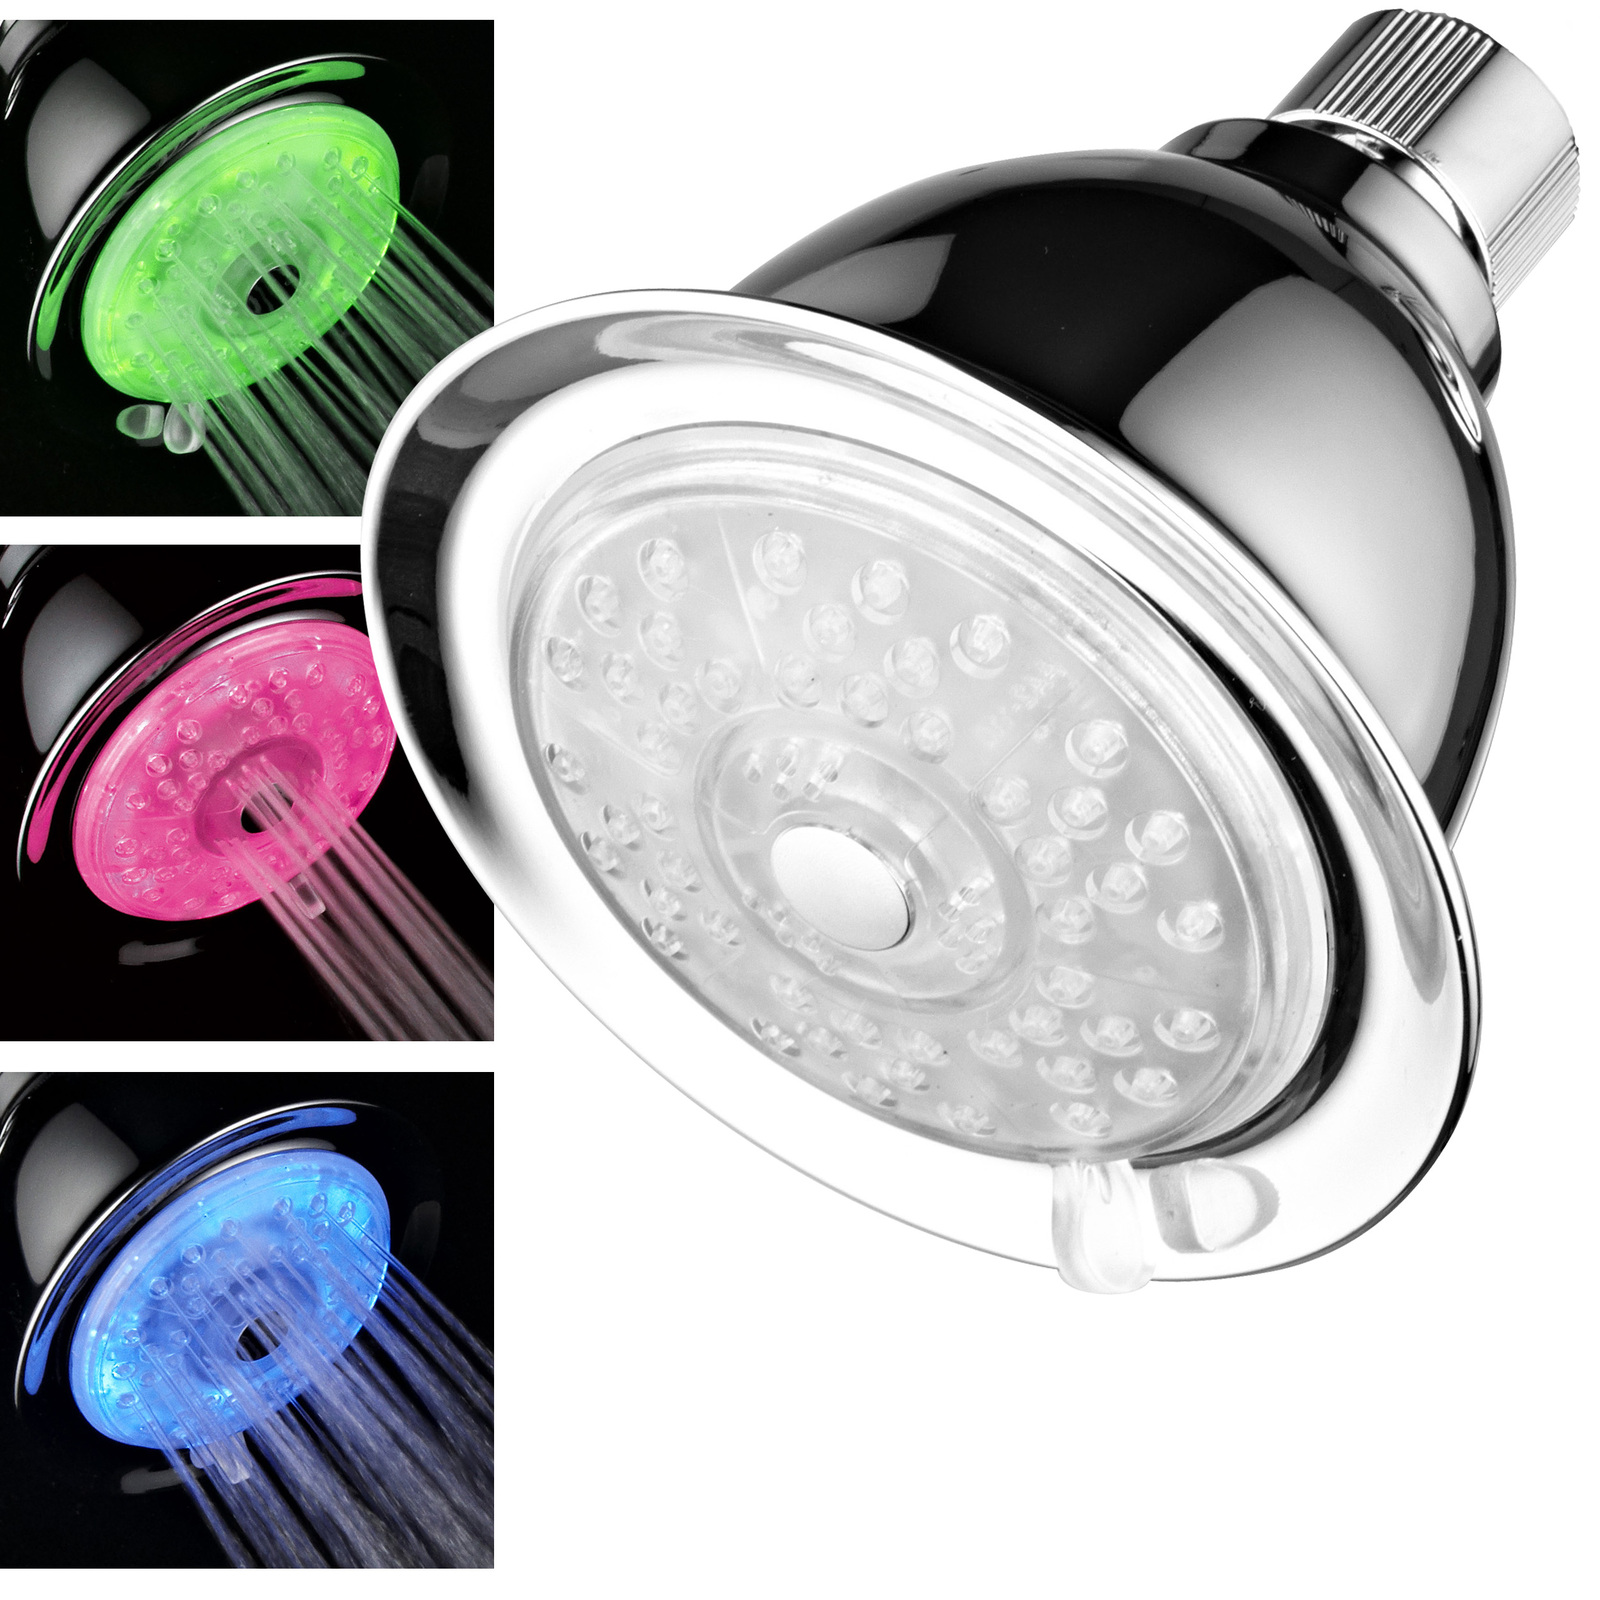 Primary image for 7-Color 4-Setting LED Shower Head With AirTurbo Pressure Boost Nozzle Technology